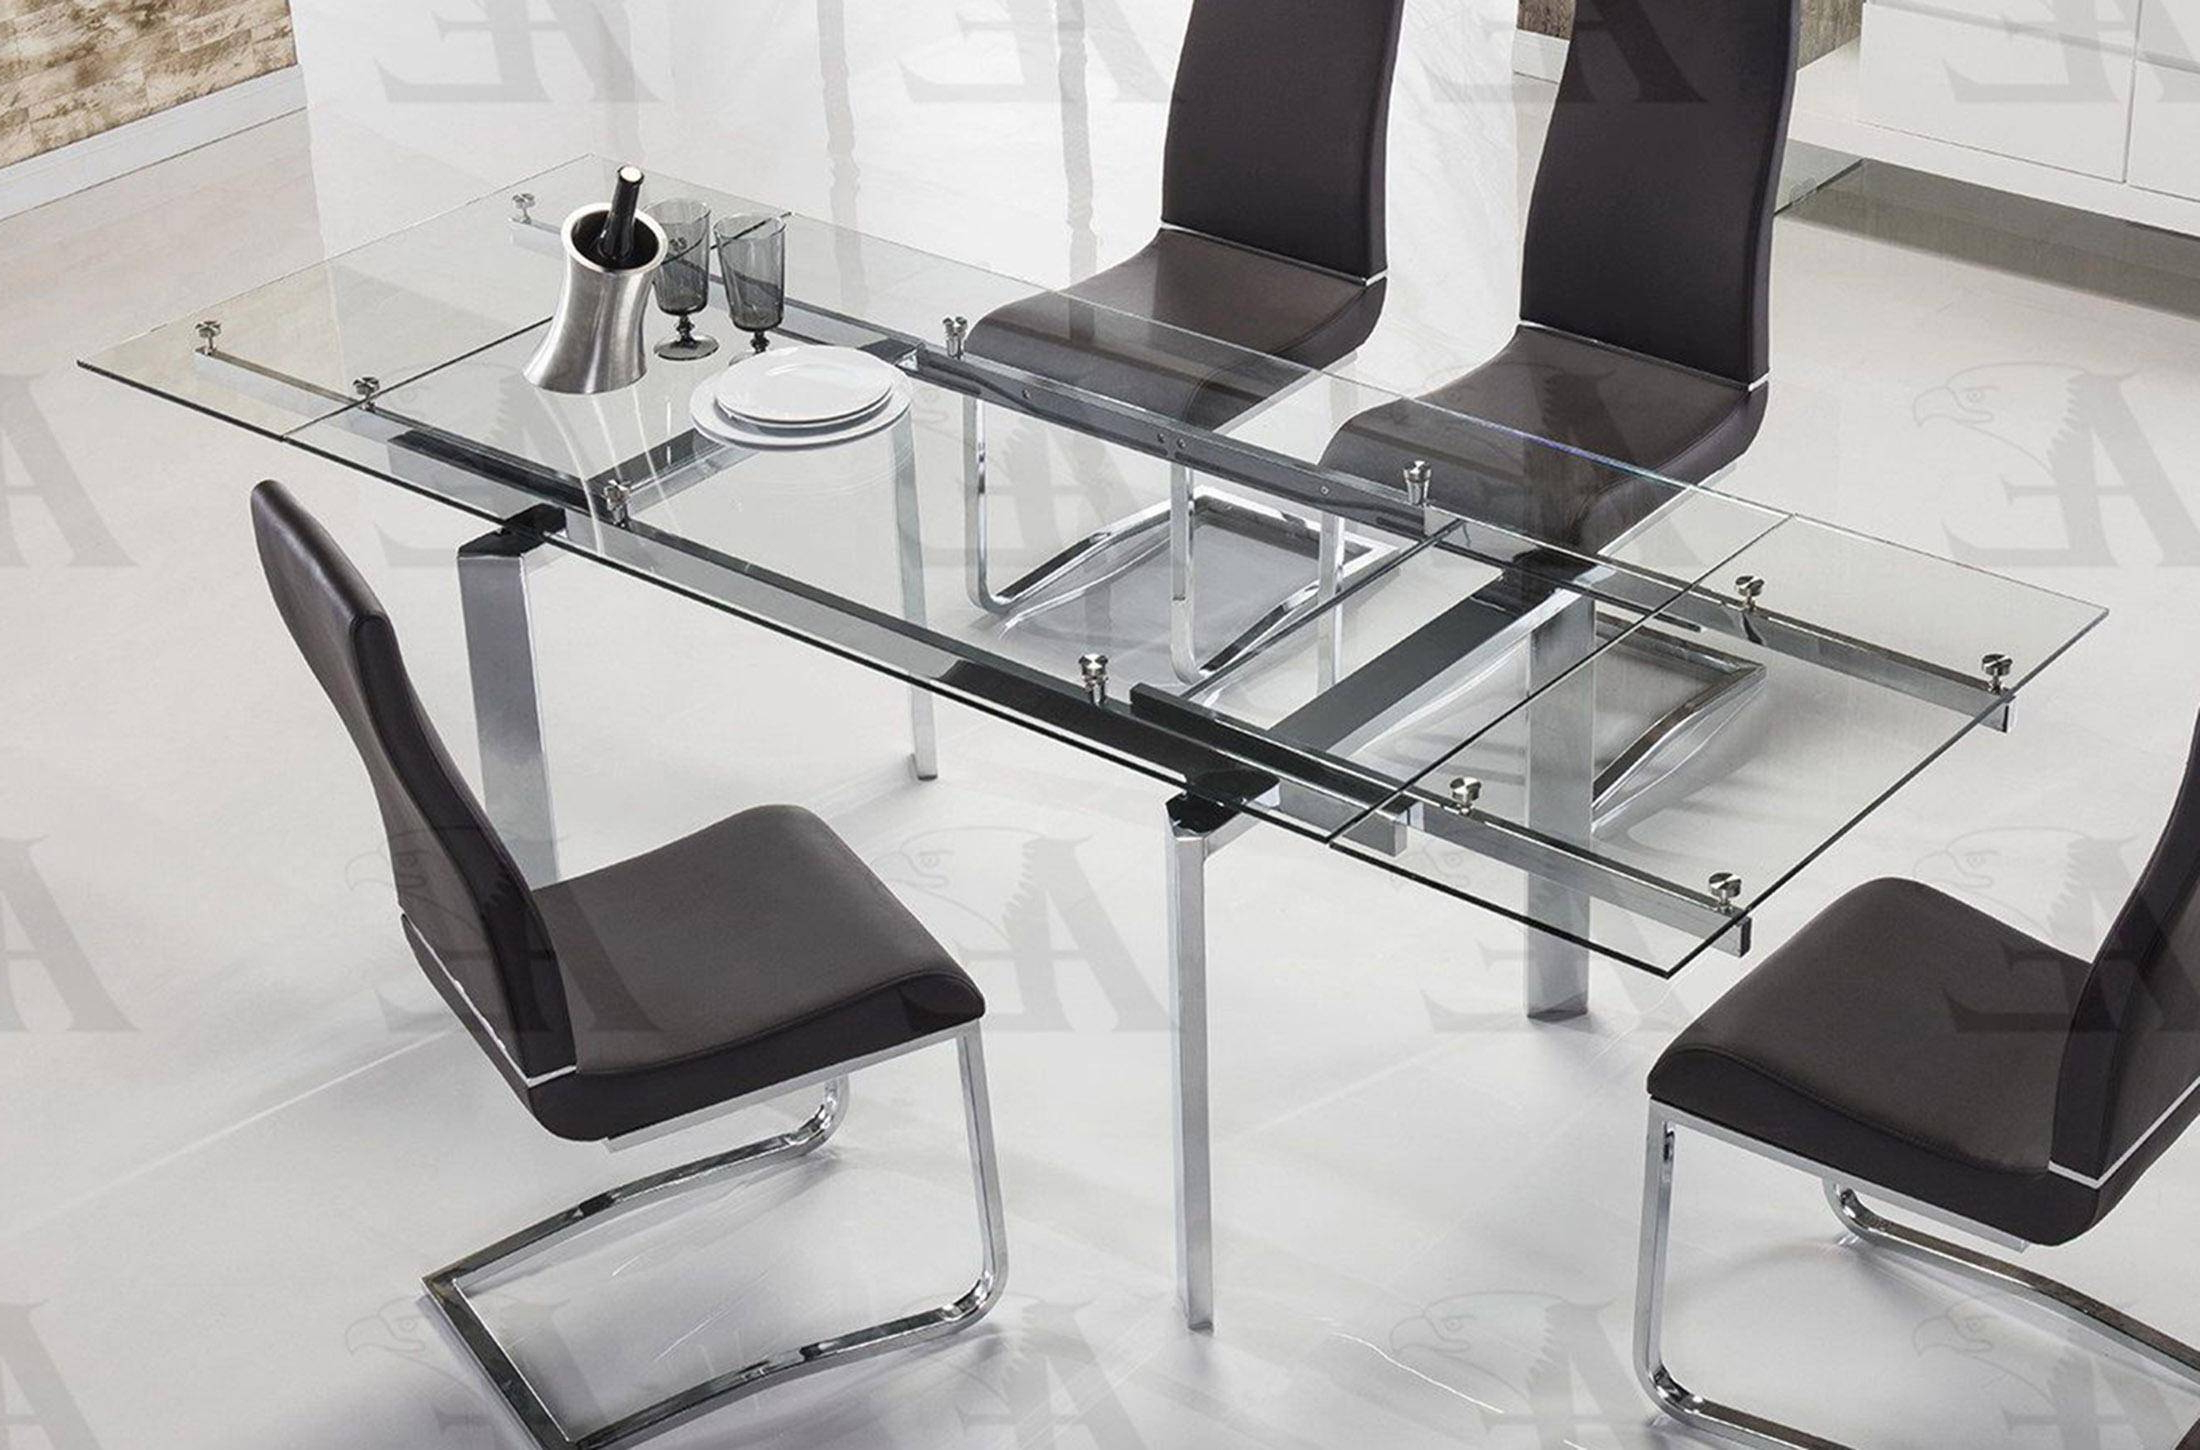 Chrome Dining Tables With Tempered Glass With Regard To Famous American Eagle Furniture Tl 1134S C Clear Glass Top Extendable Dining Table  Chrome Legs (Gallery 22 of 30)